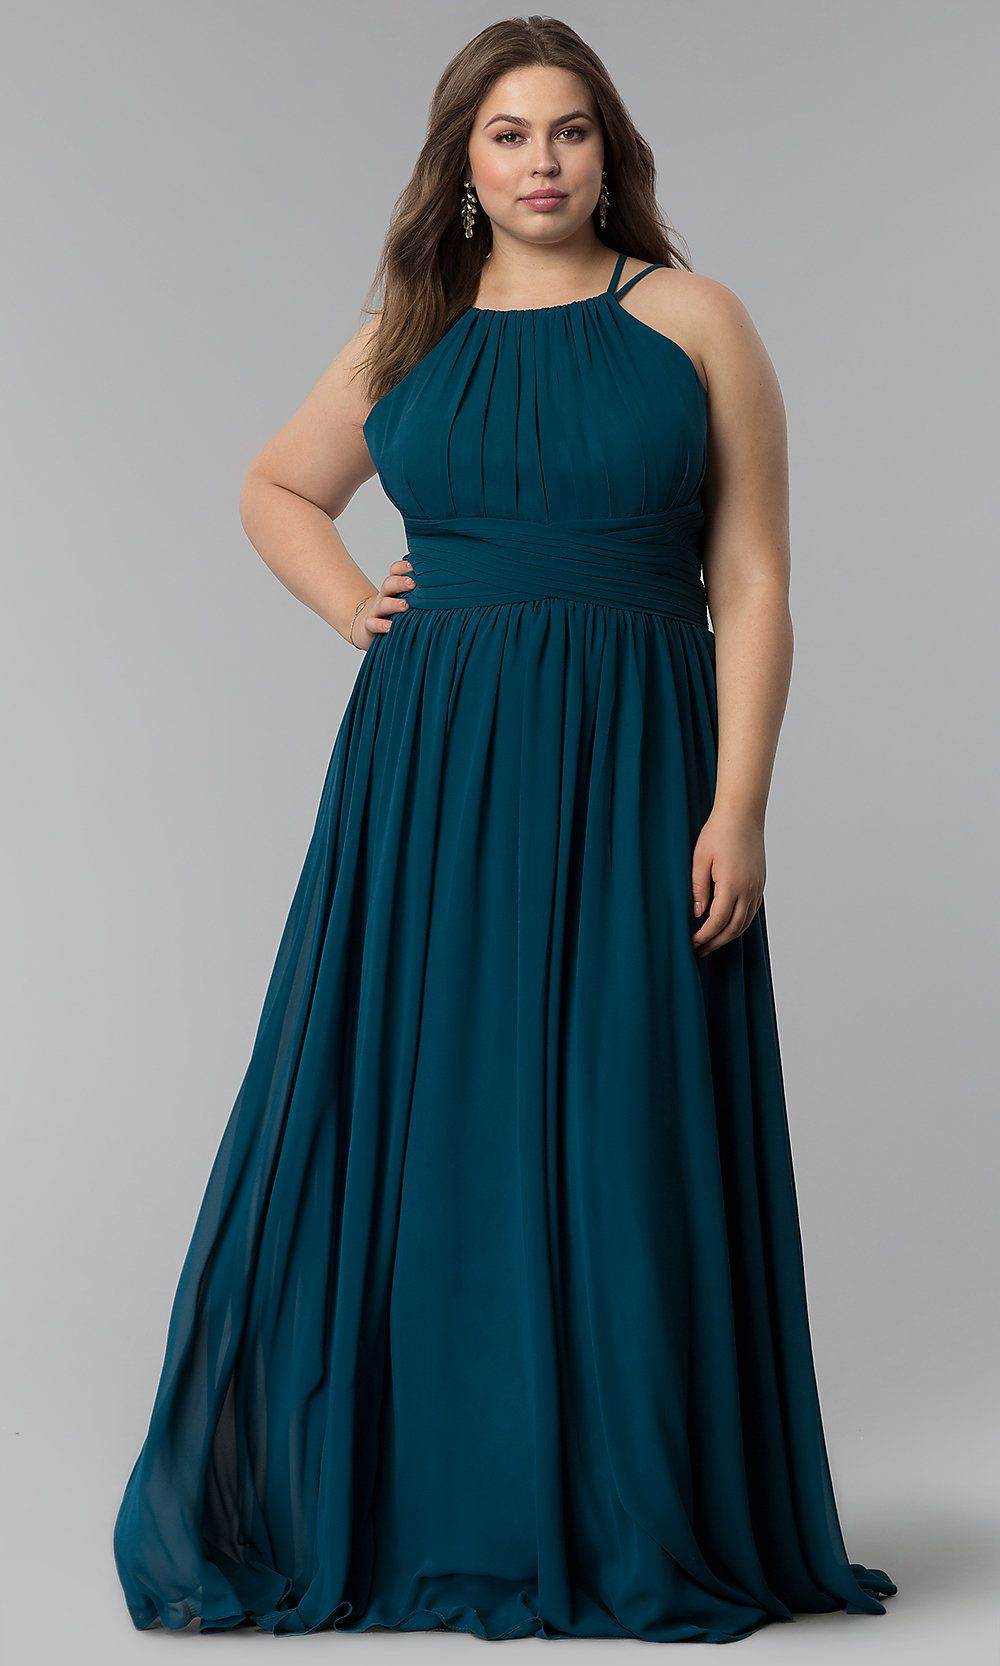 High neck dress plus size